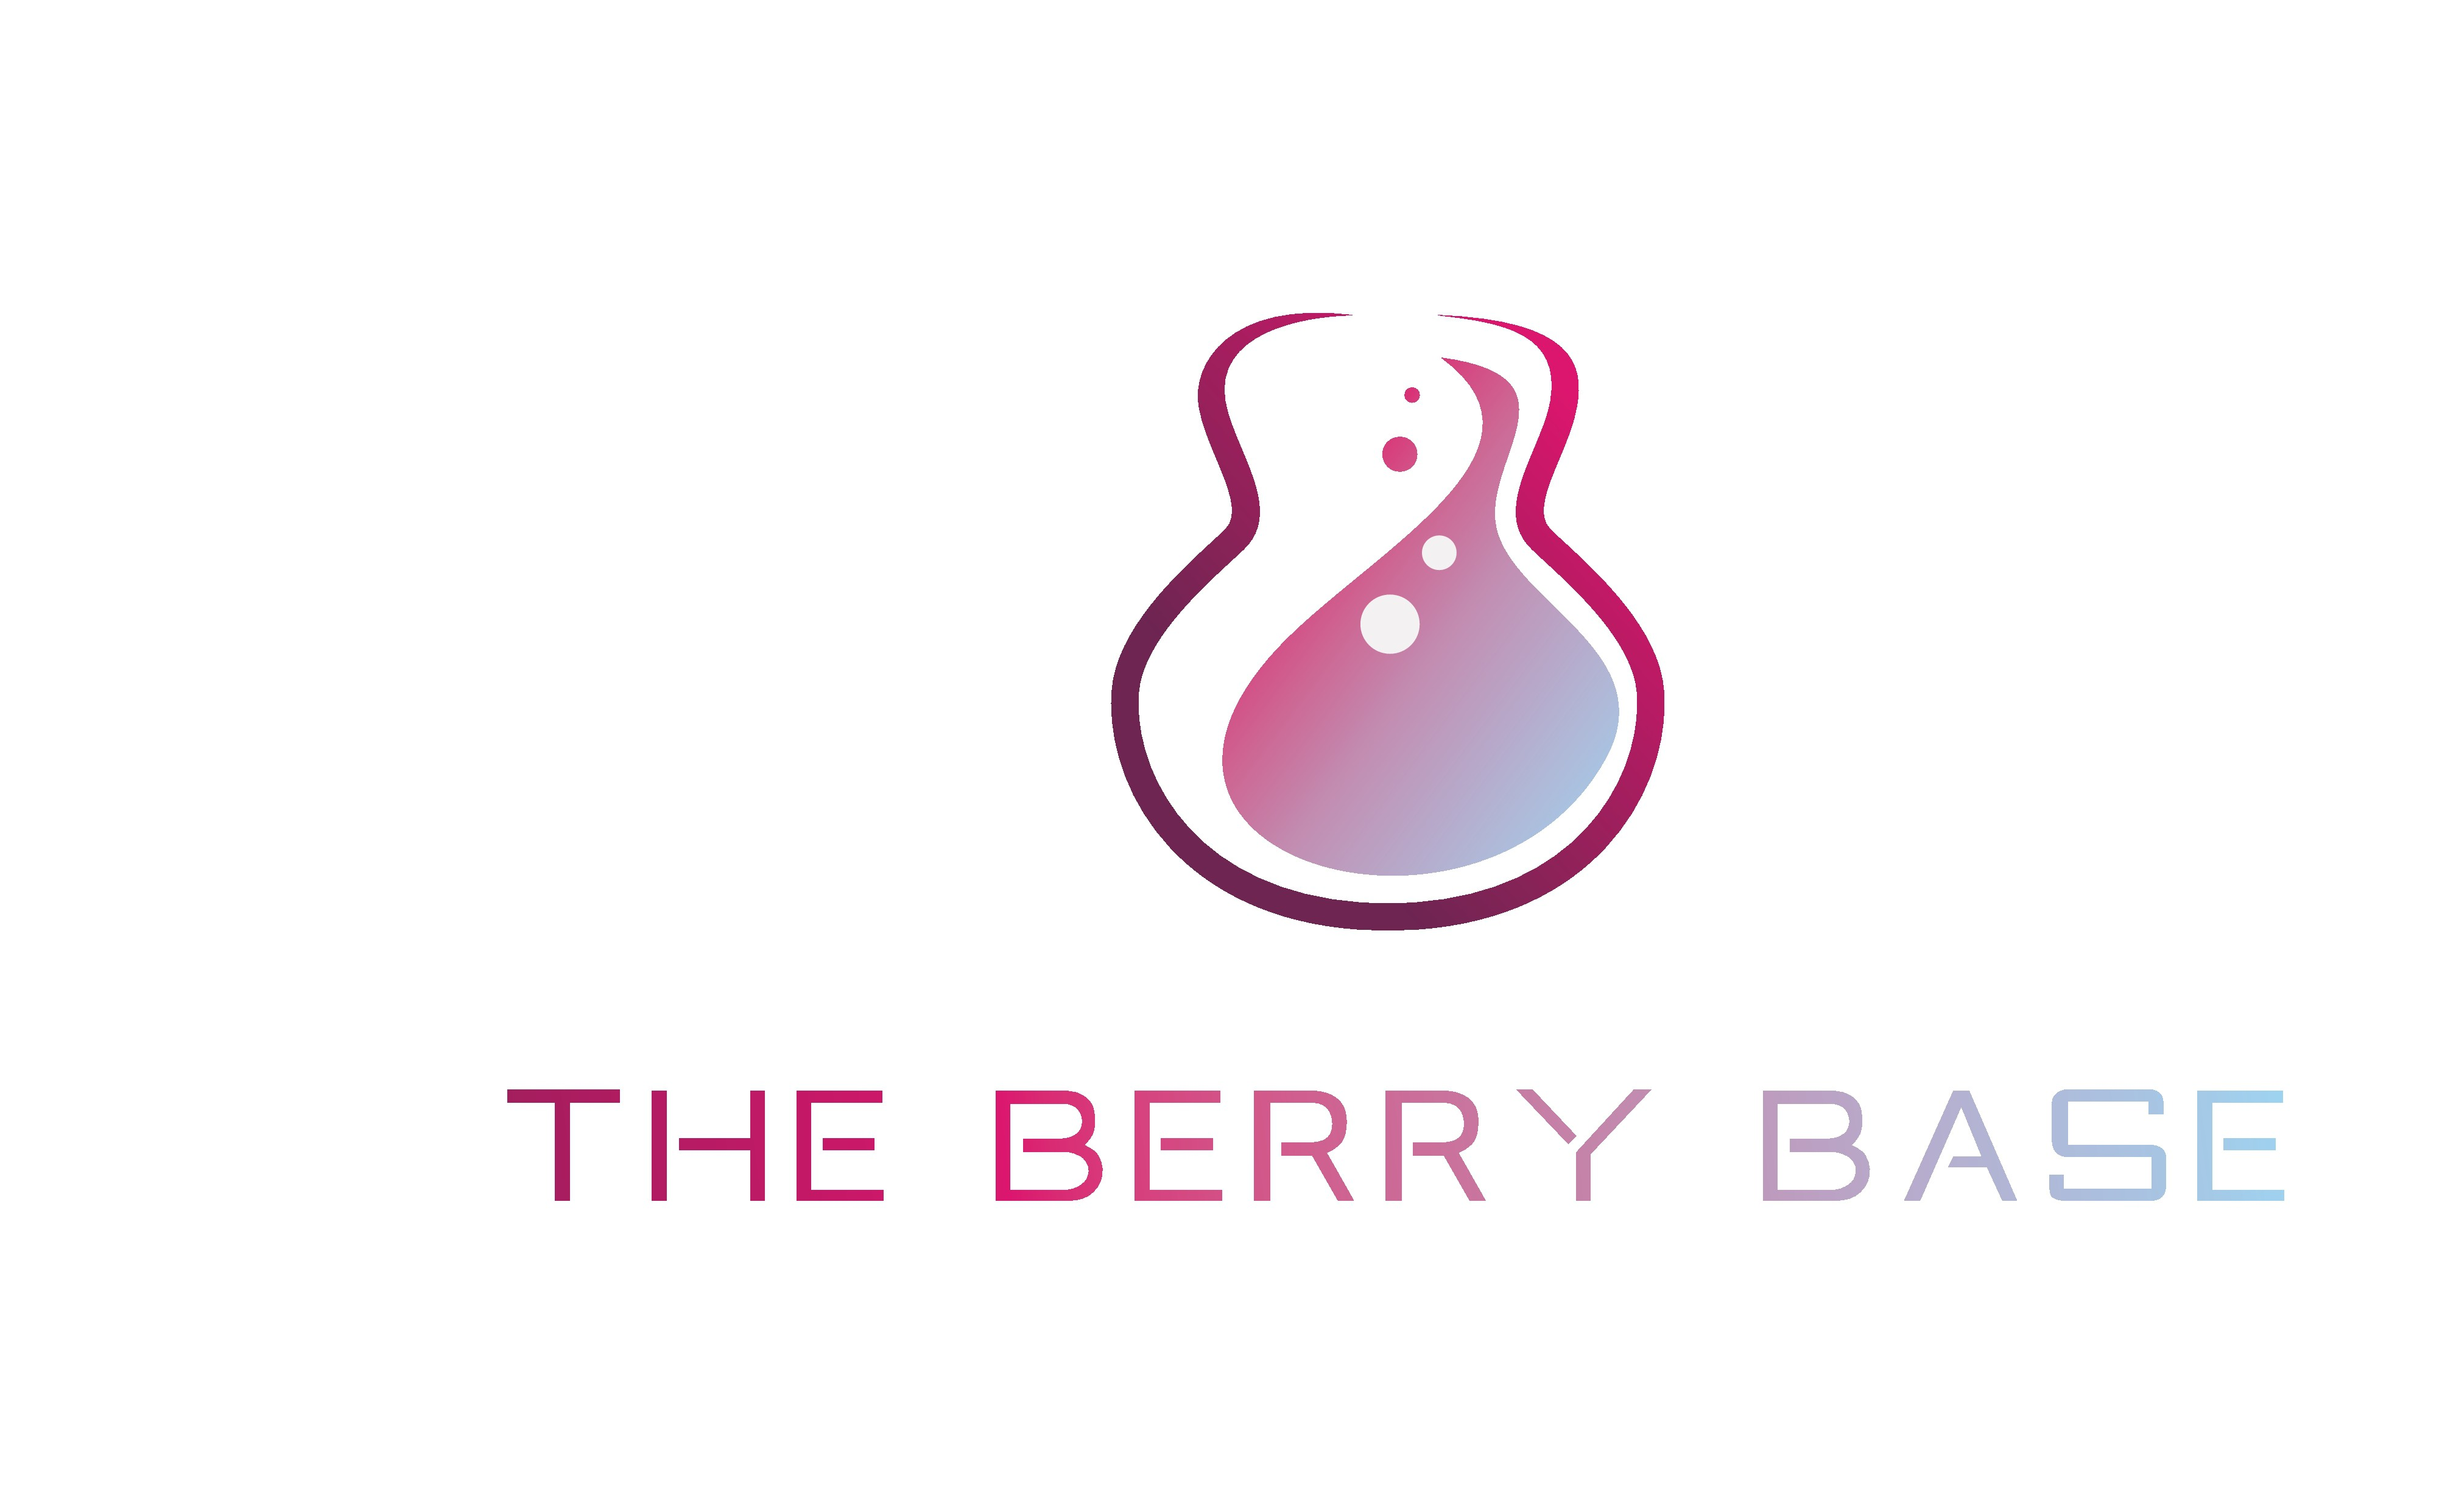 Create a B inspired by the shape of a bass guitar for the berry base